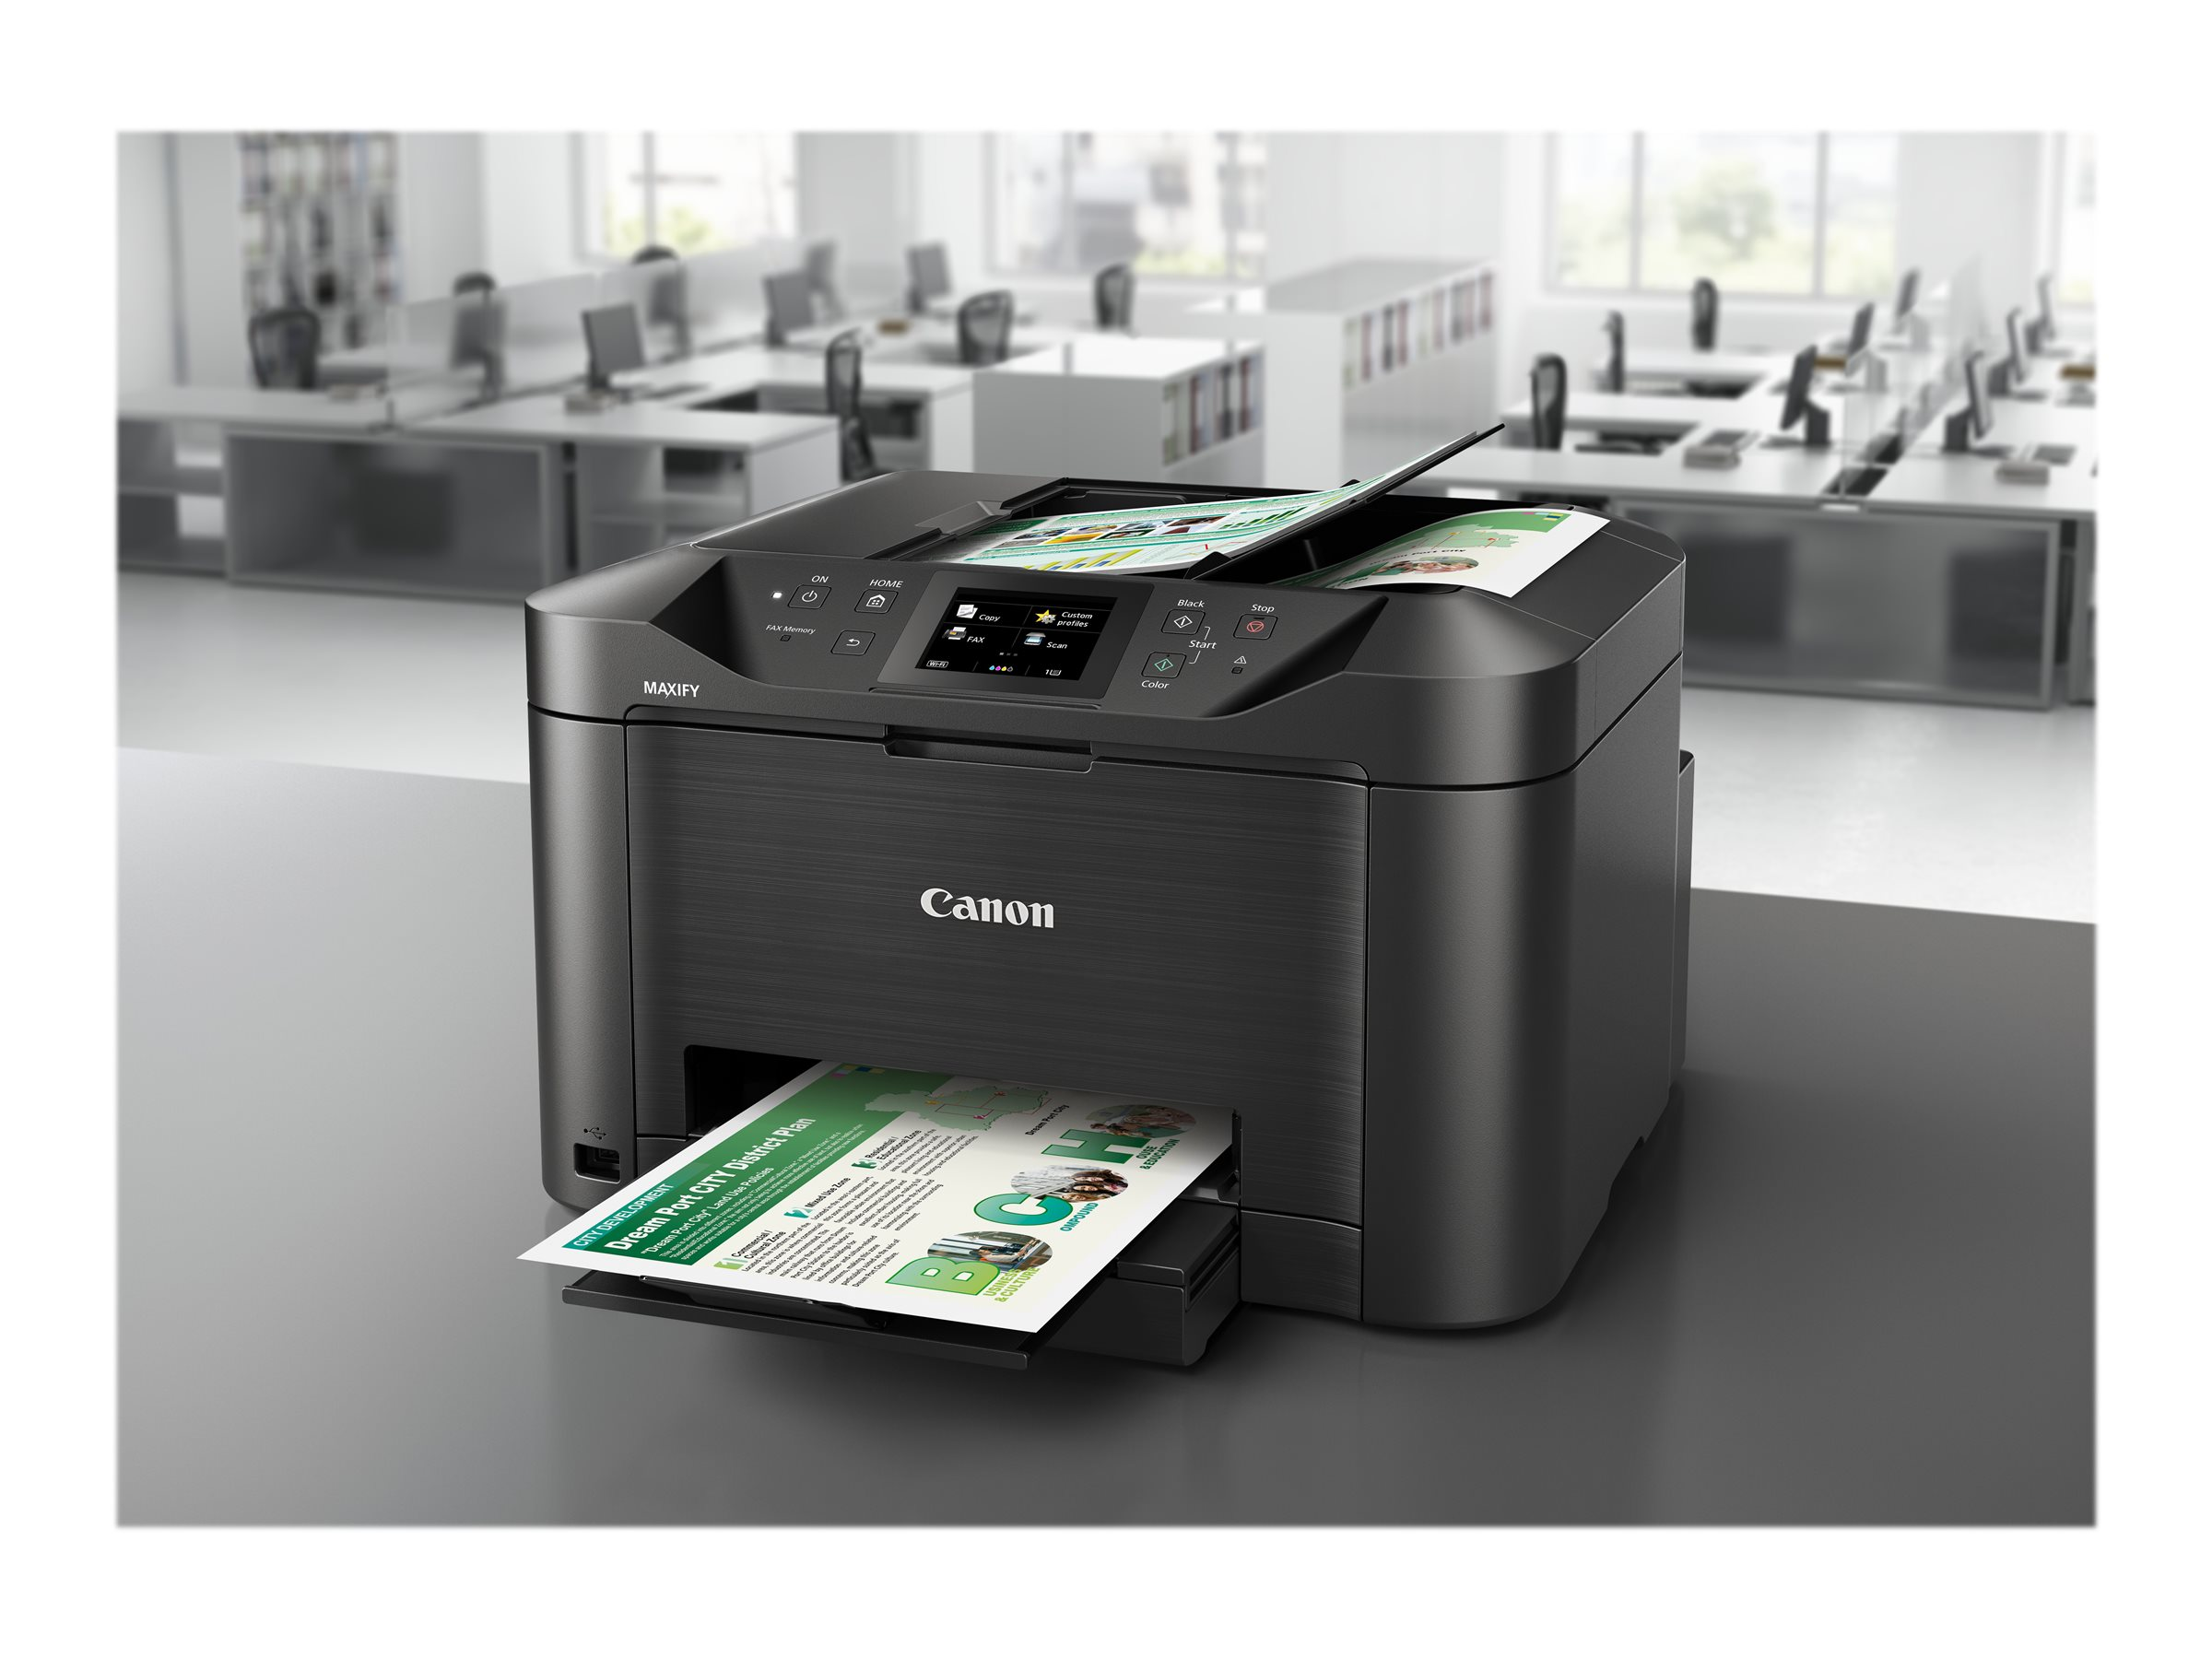 Canon MAXIFY MB5155 - Multifunktionsdrucker - Farbe - Tintenstrahl - A4 (210 x 297 mm), Legal (216 x 356 mm) (Original) - A4/Legal (Medien)